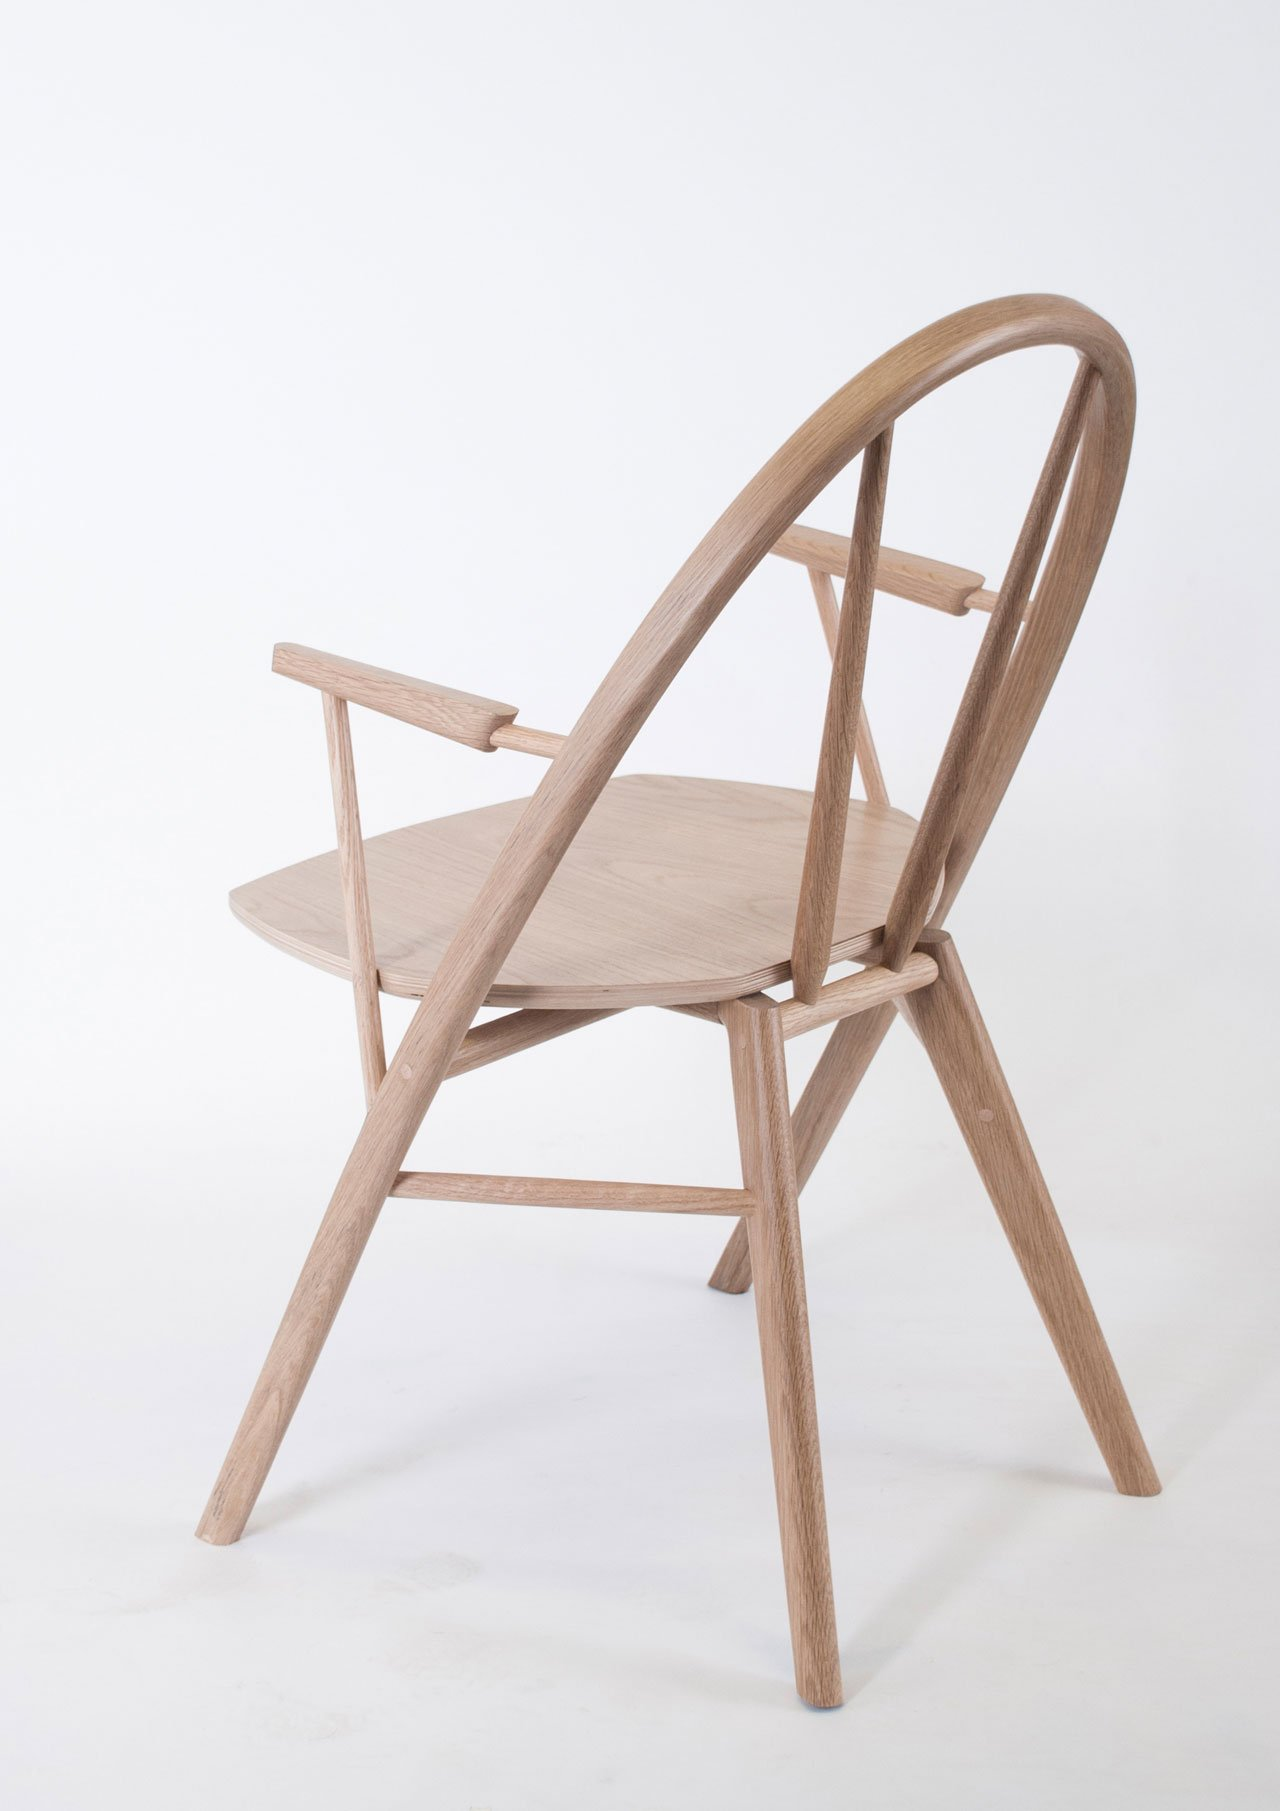 The Bow Chair by Taylor McKenzie-Veal (US), winner of Interieur Awards - Objects Category.